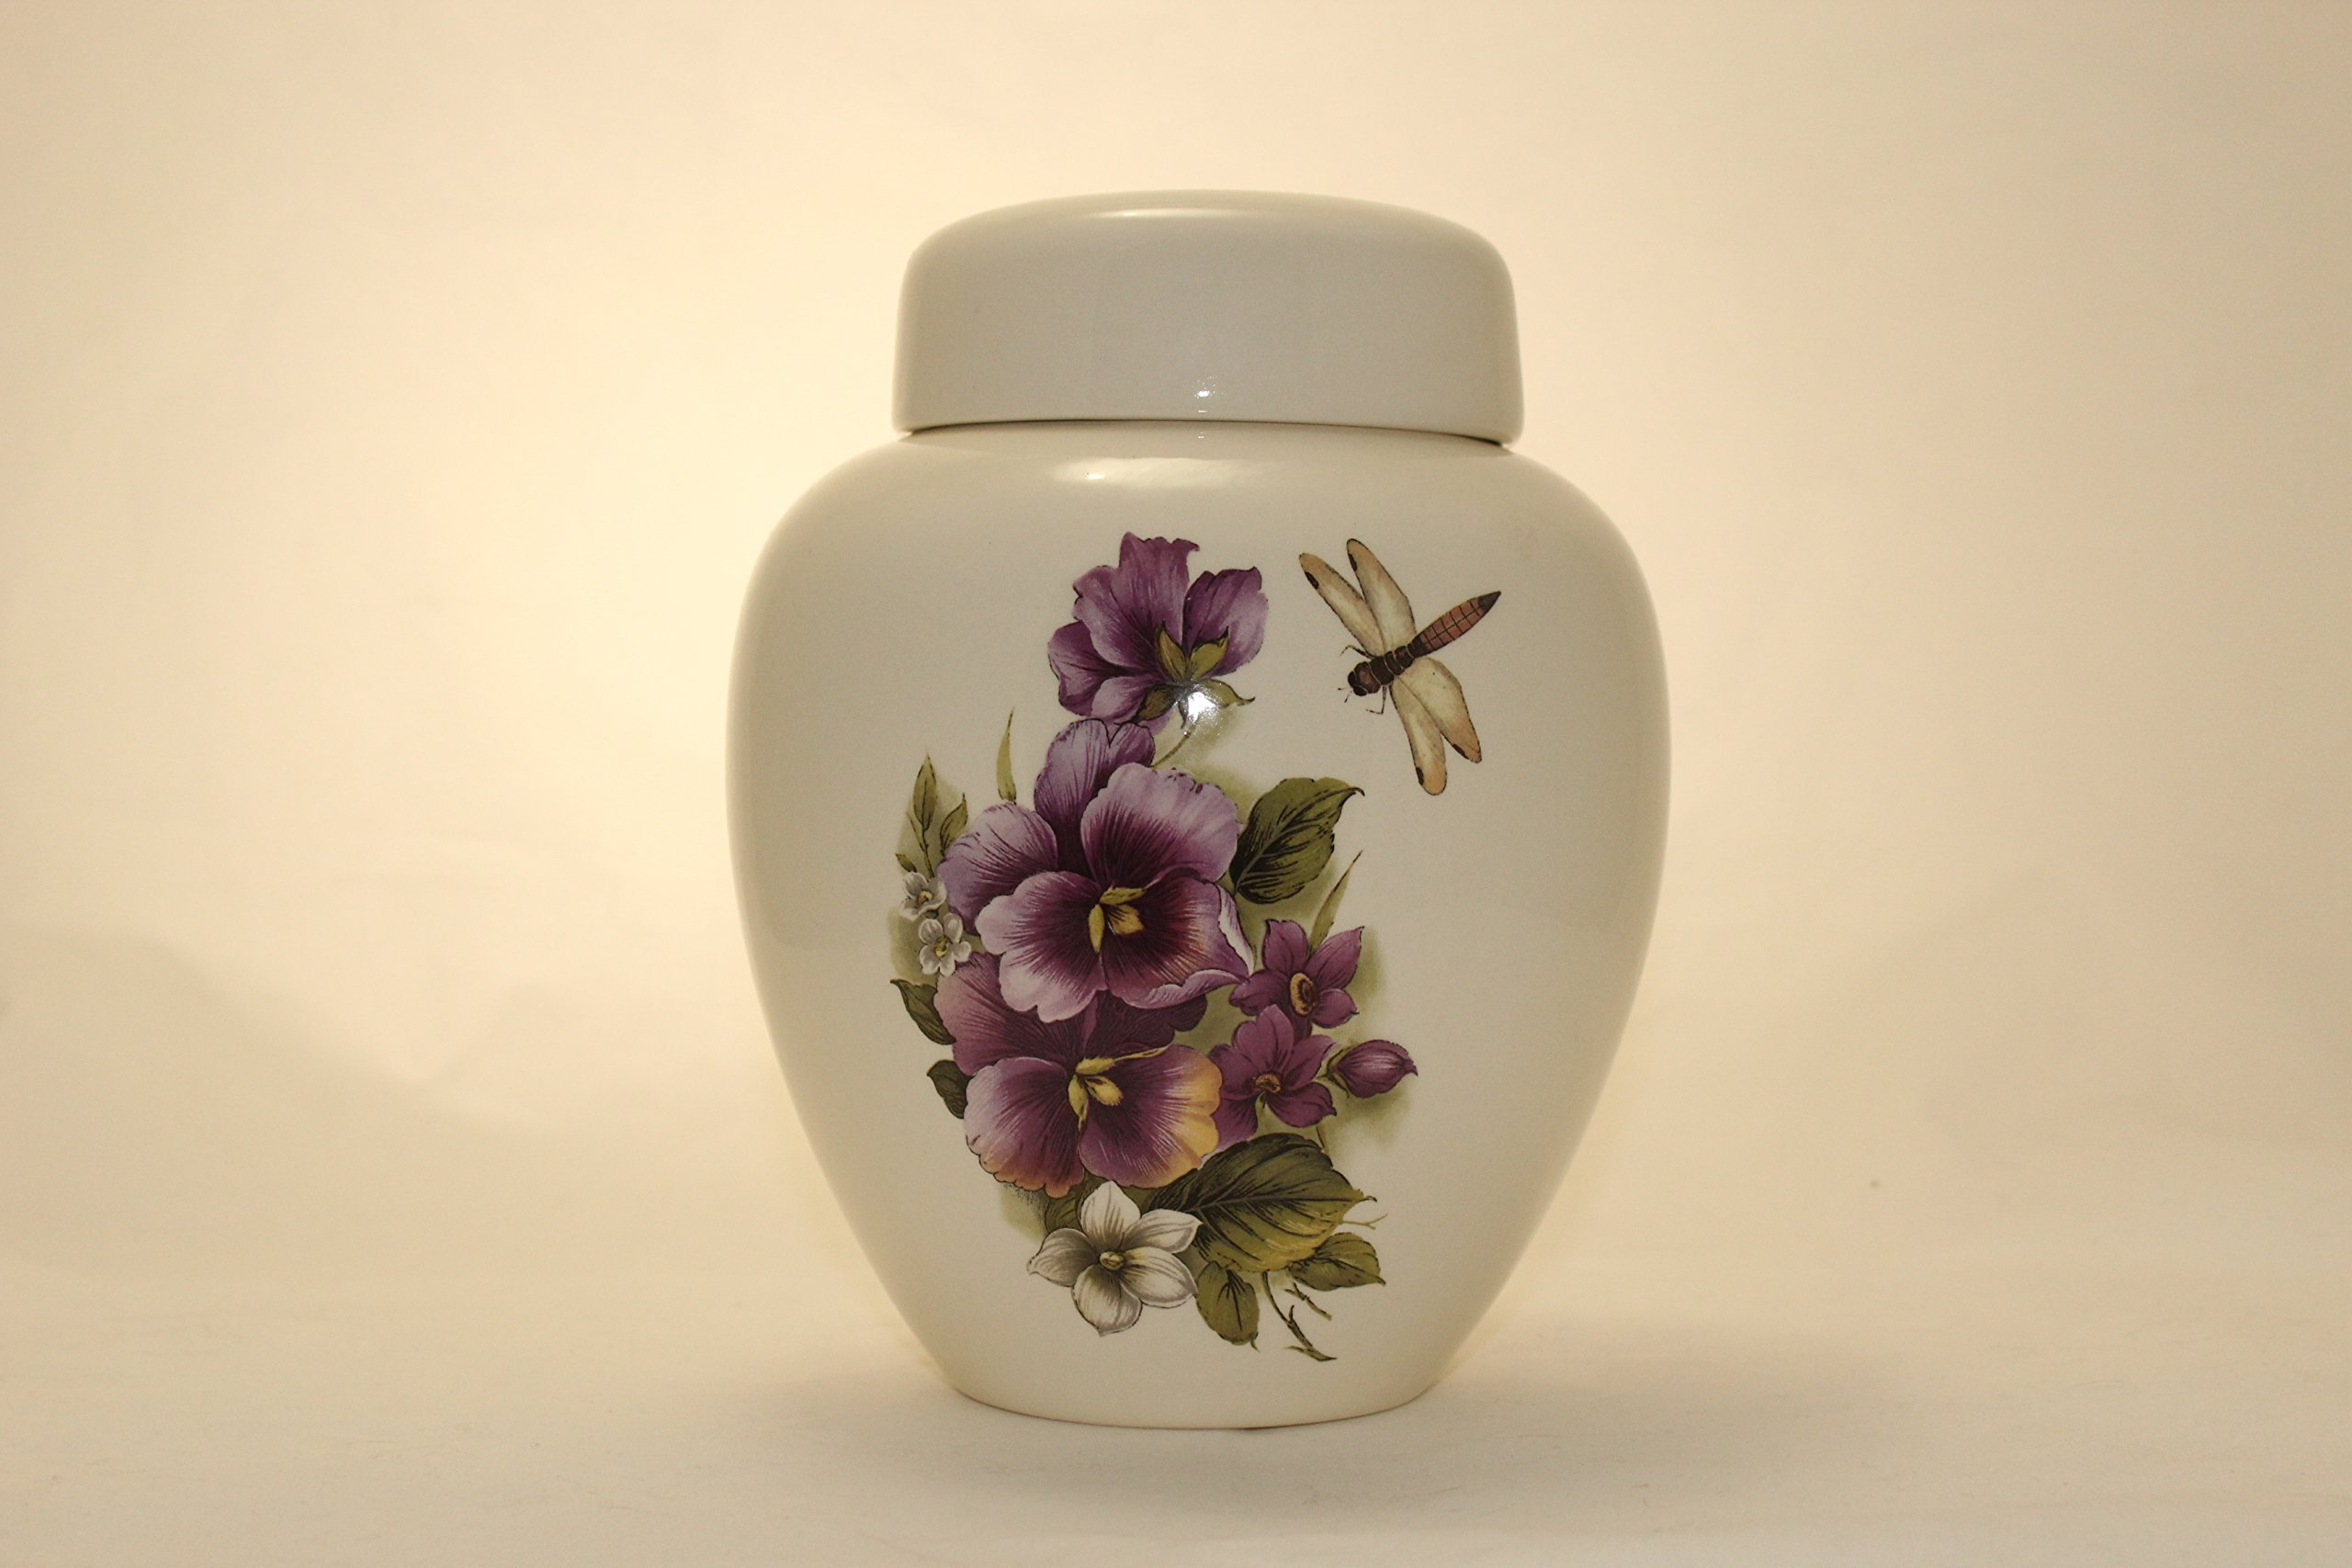 Pansy and Dragonfly - Flower Funeral Urn - Cremation Urn for Human Ashes - Hand Made Pottery